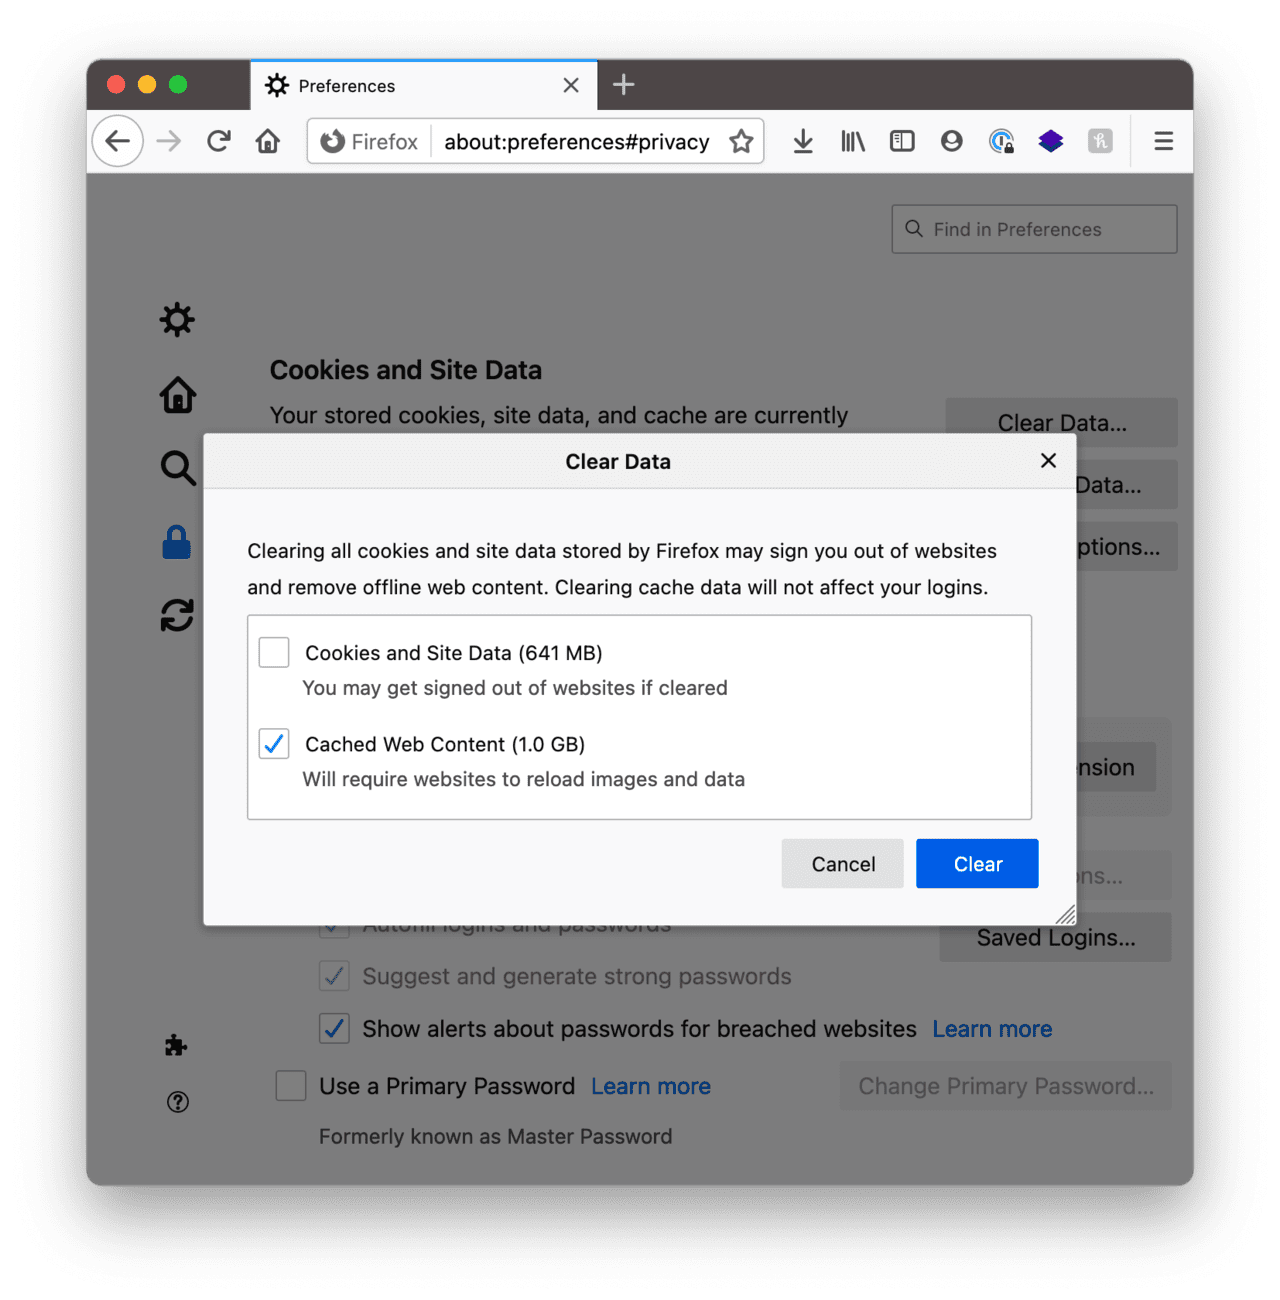 How to clear cache in Firefox manually